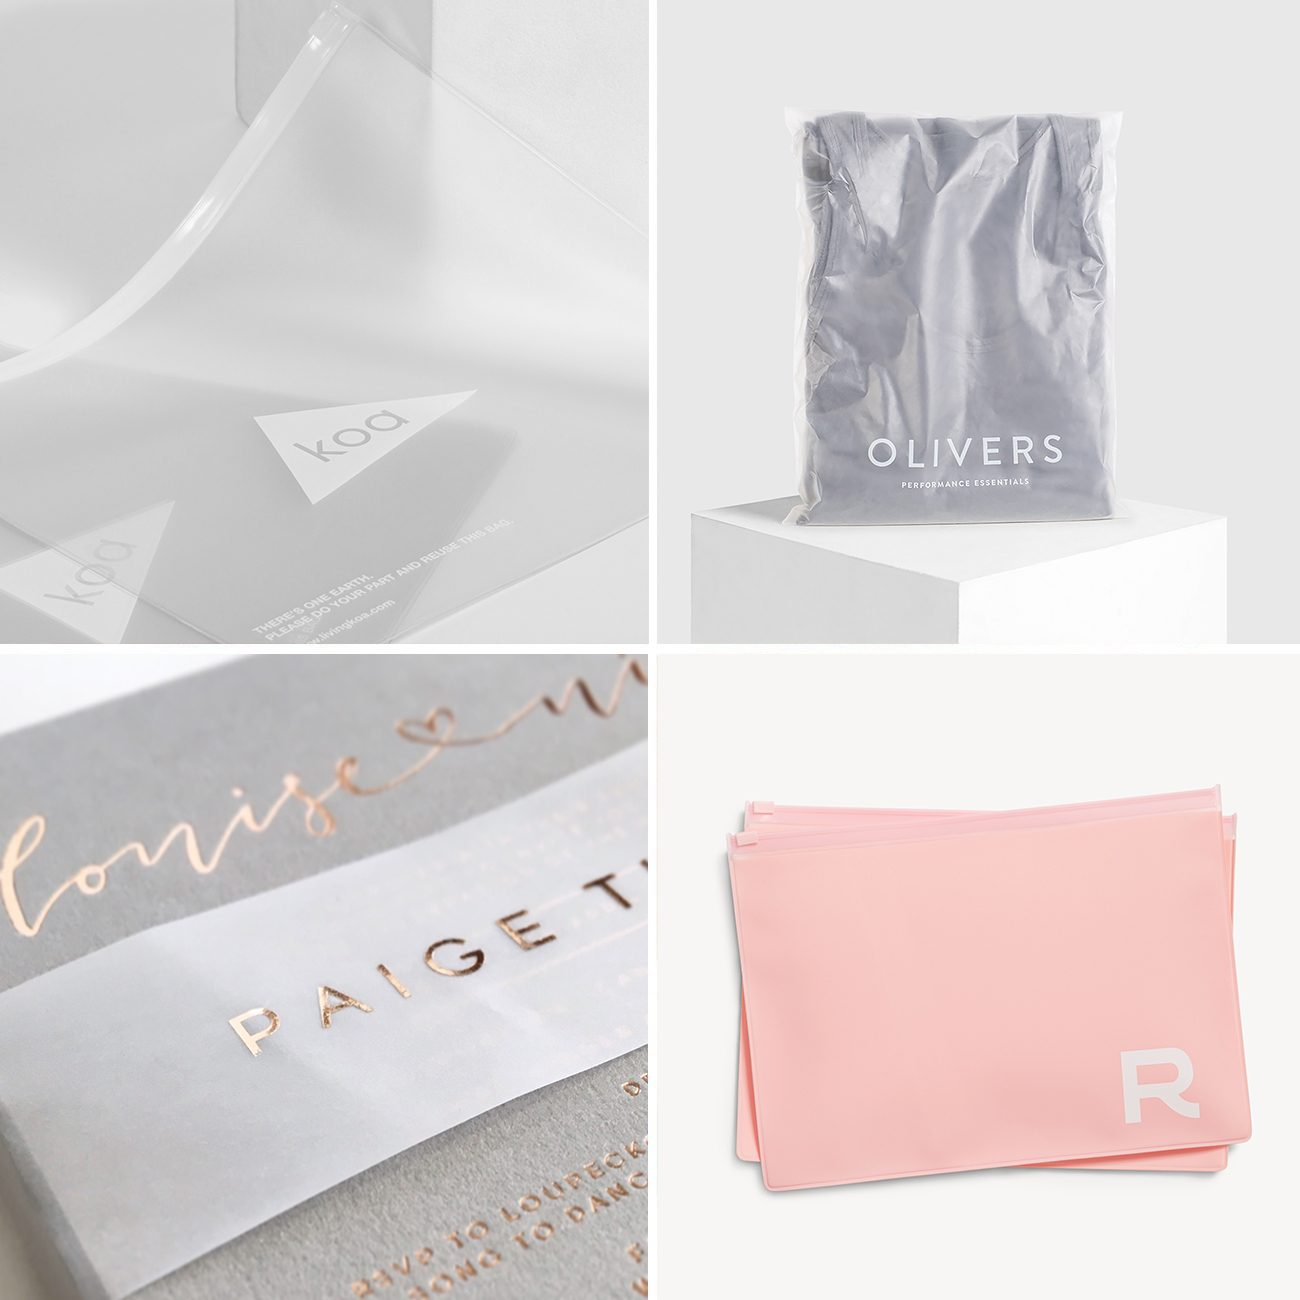 Photos via: MM La Fleur, Lumi, Paige Tuzée 90 Ideas to Spruce Up Your Holiday Packaging Design